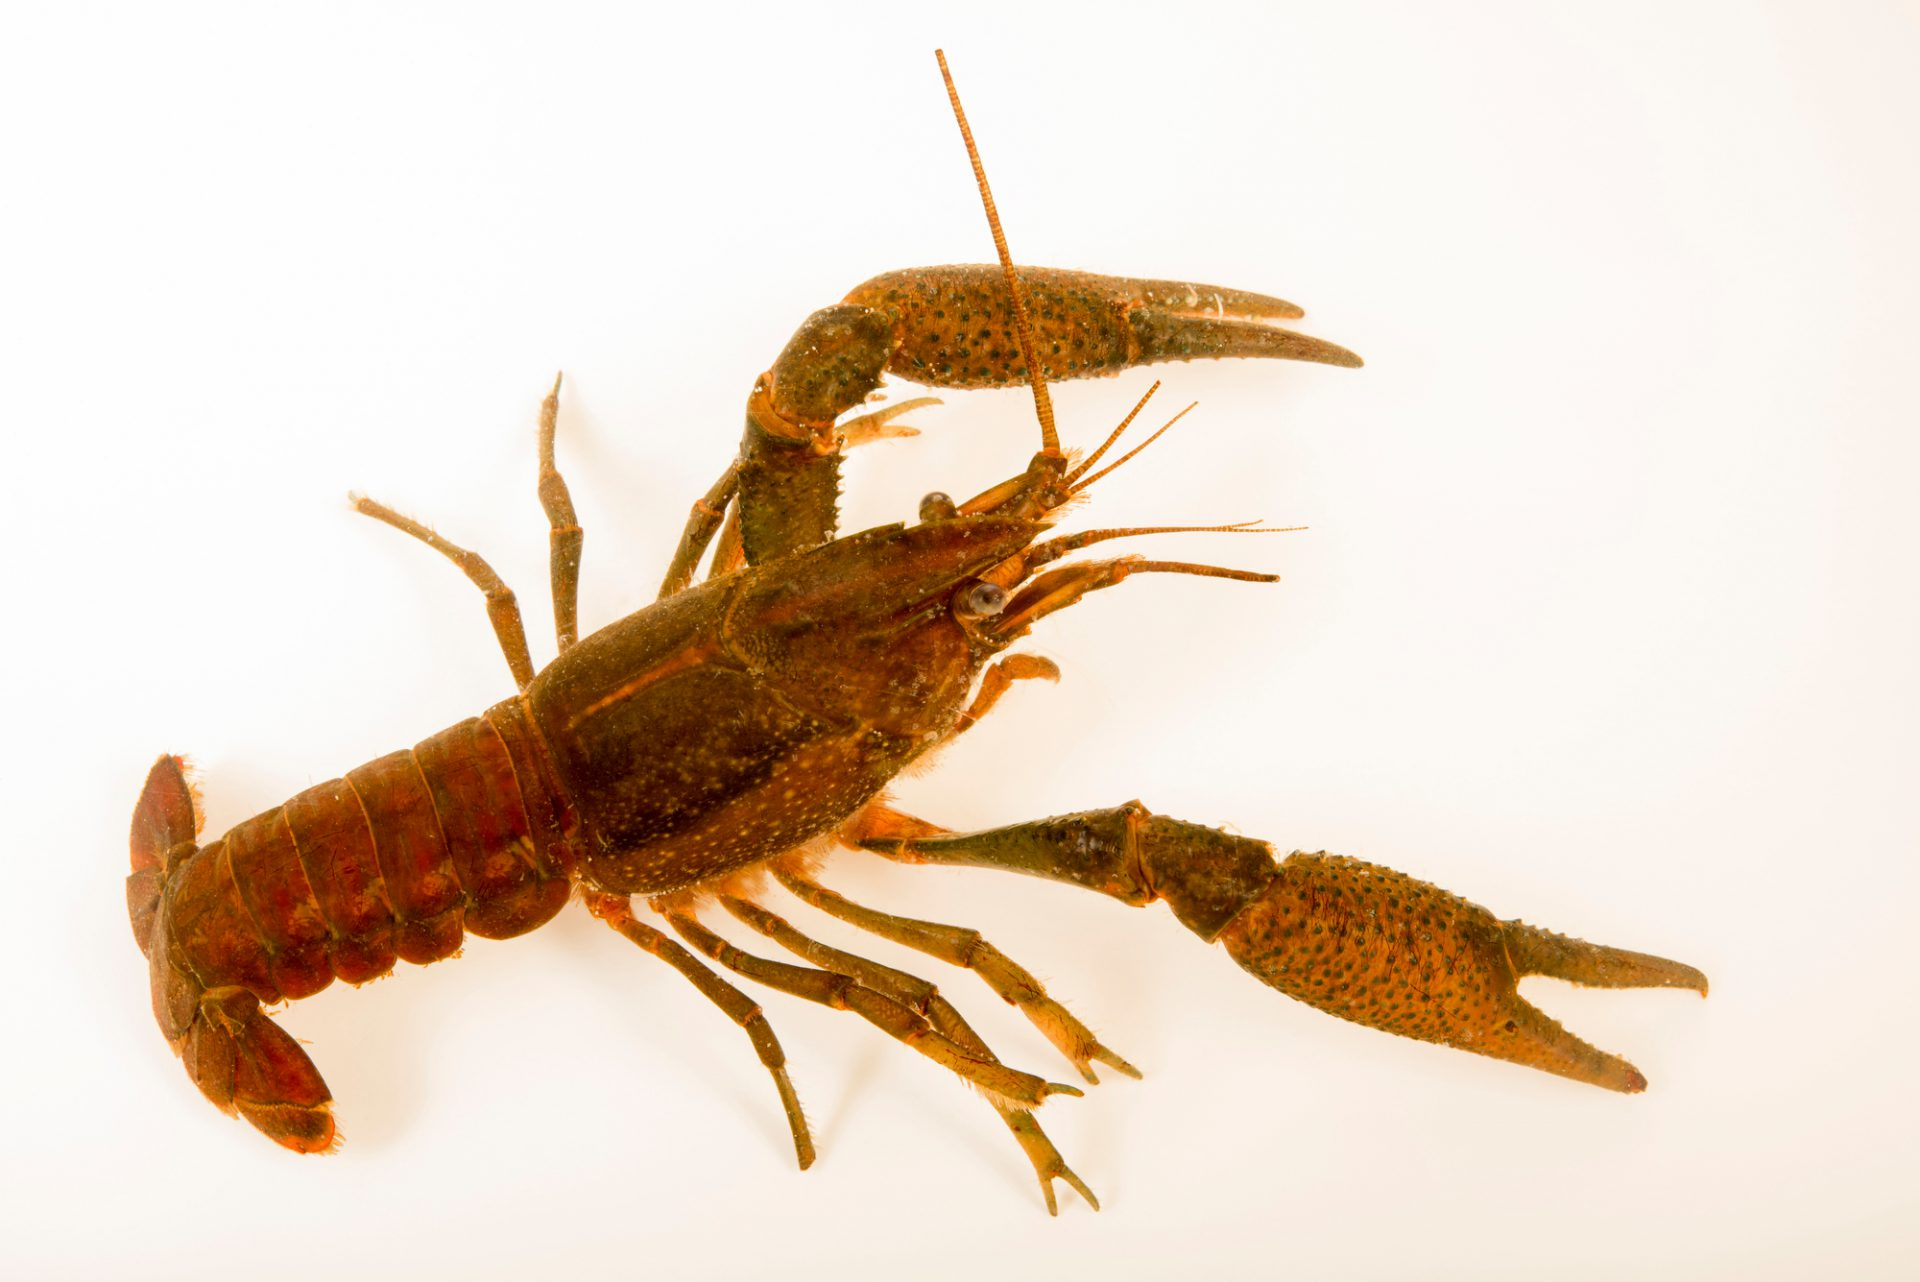 Photo: Deceitful crayfish (Procambarus fallax) collected at Beecher Springs Run, a stream on the grounds of Welaka National Fish Hatchery.